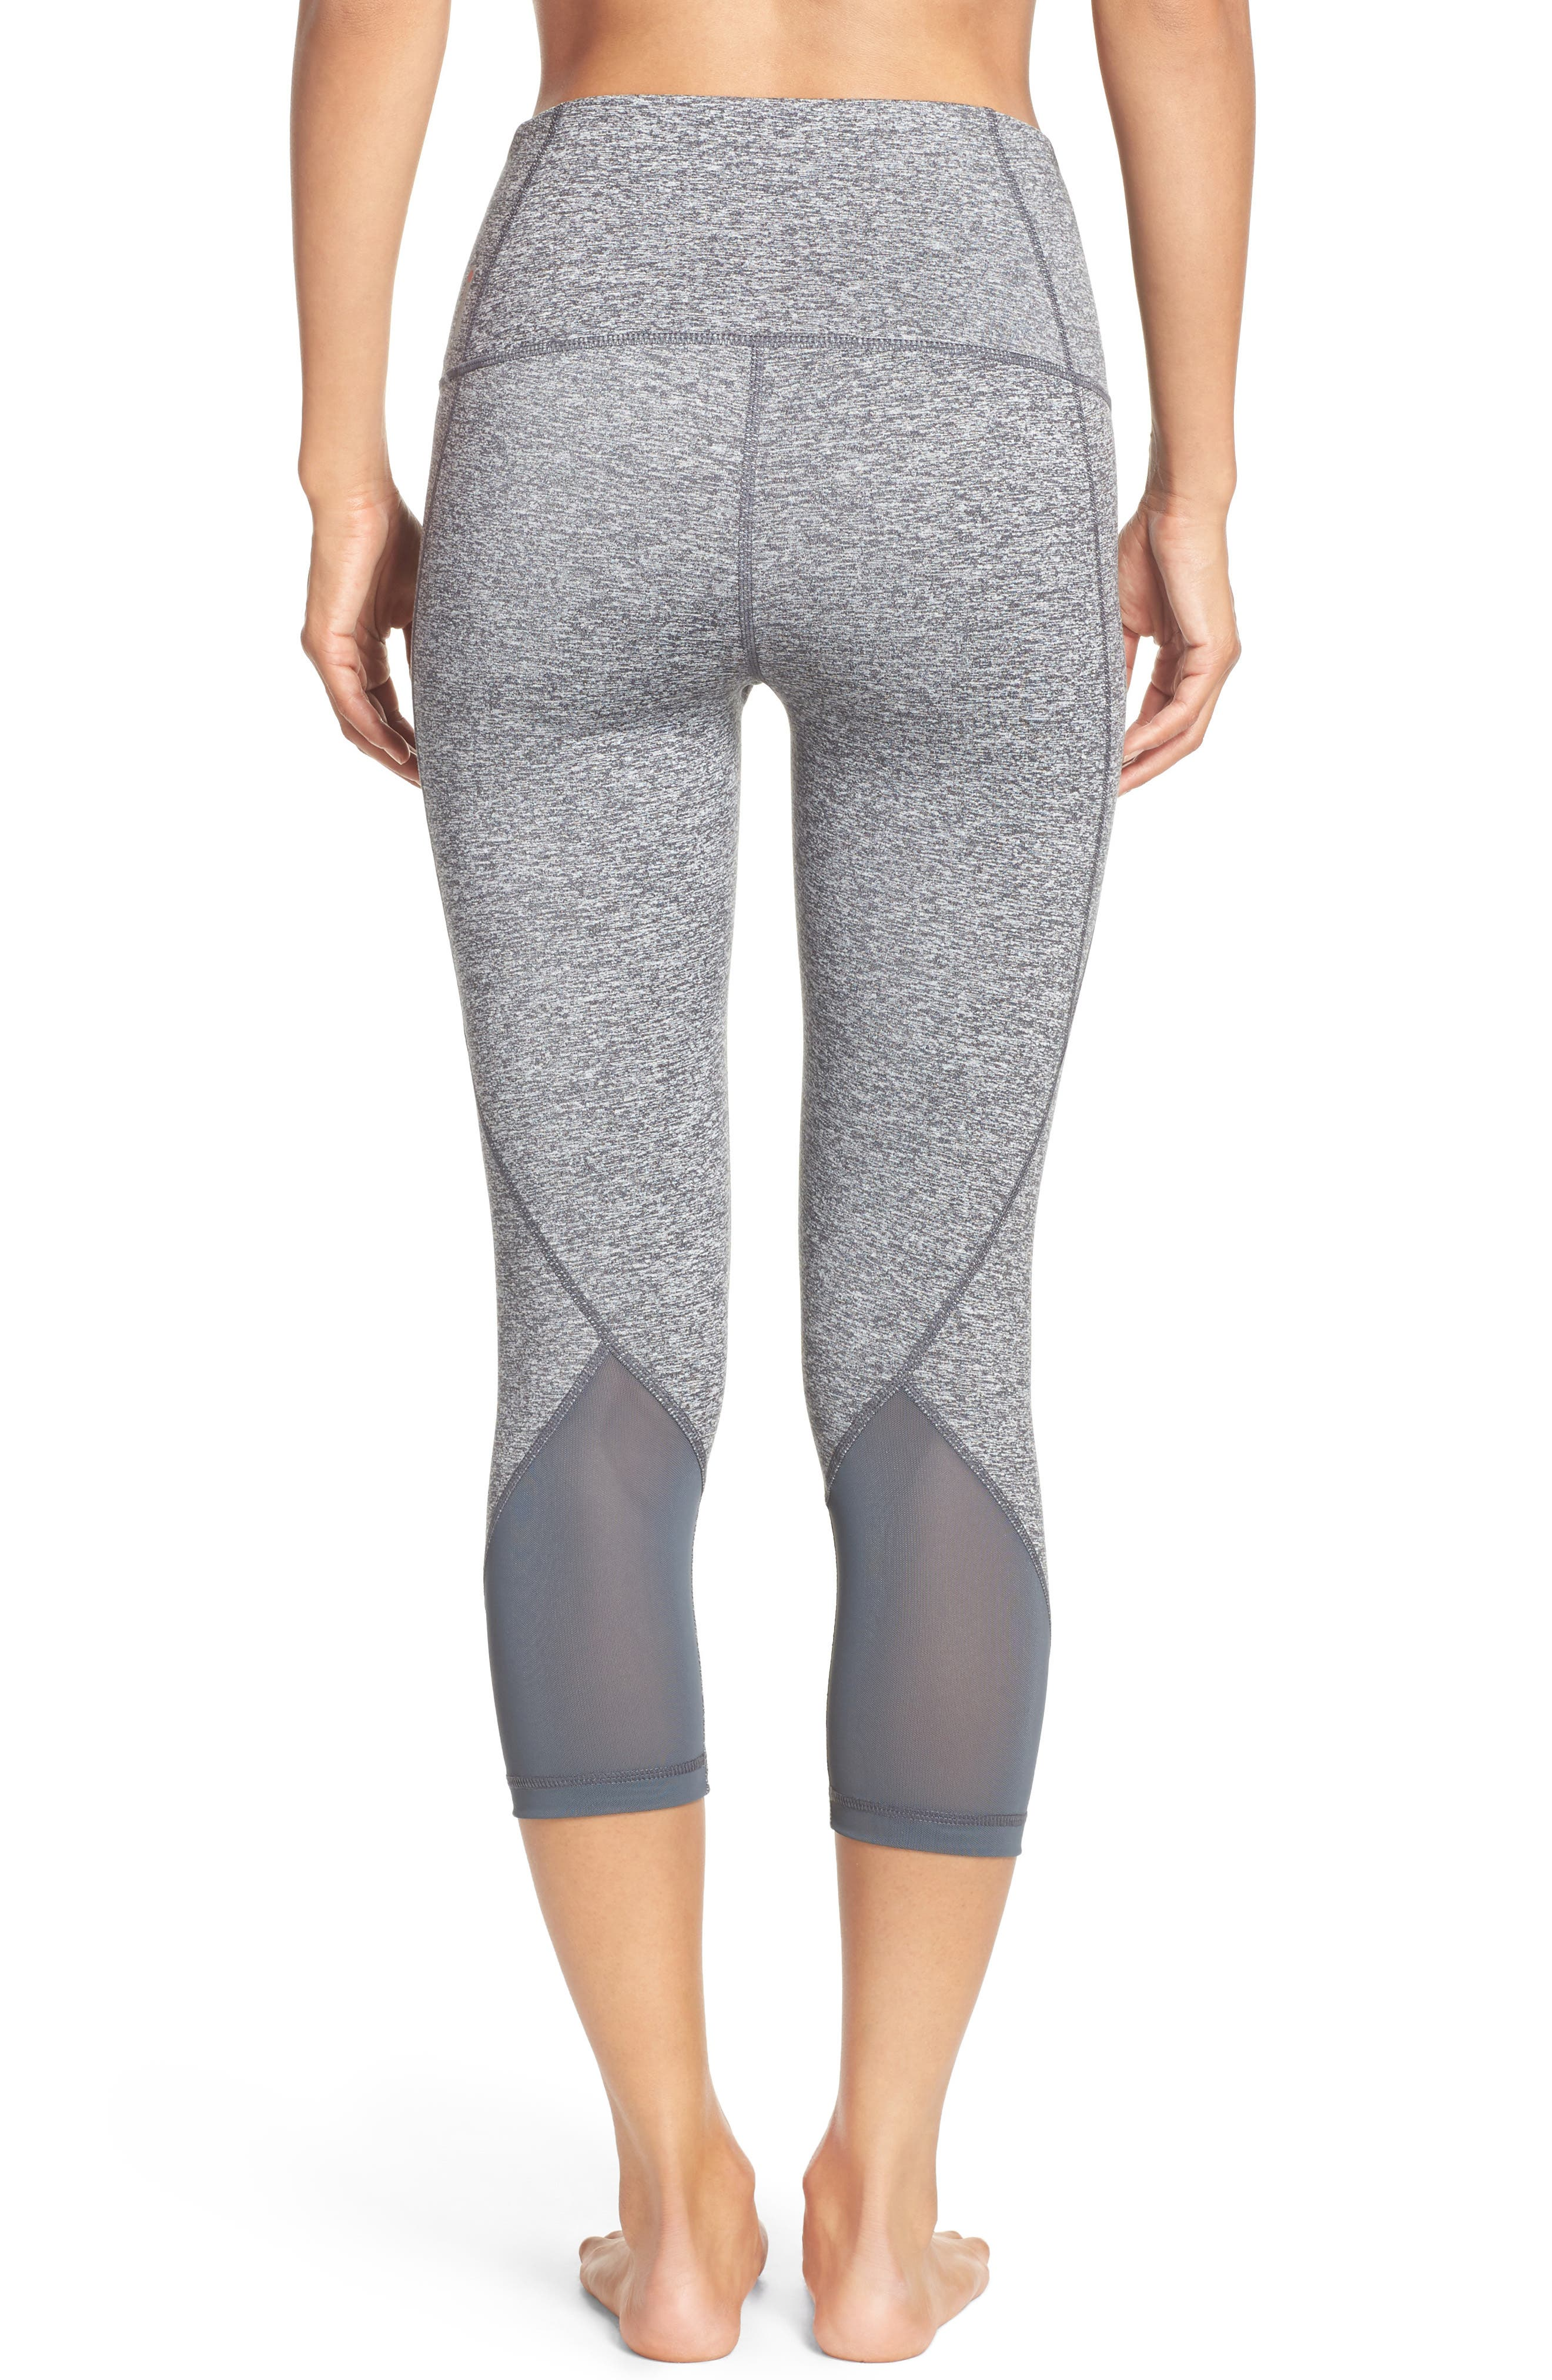 Alternate Image 2  - Zella 'Hatha' High Waist Crop Leggings